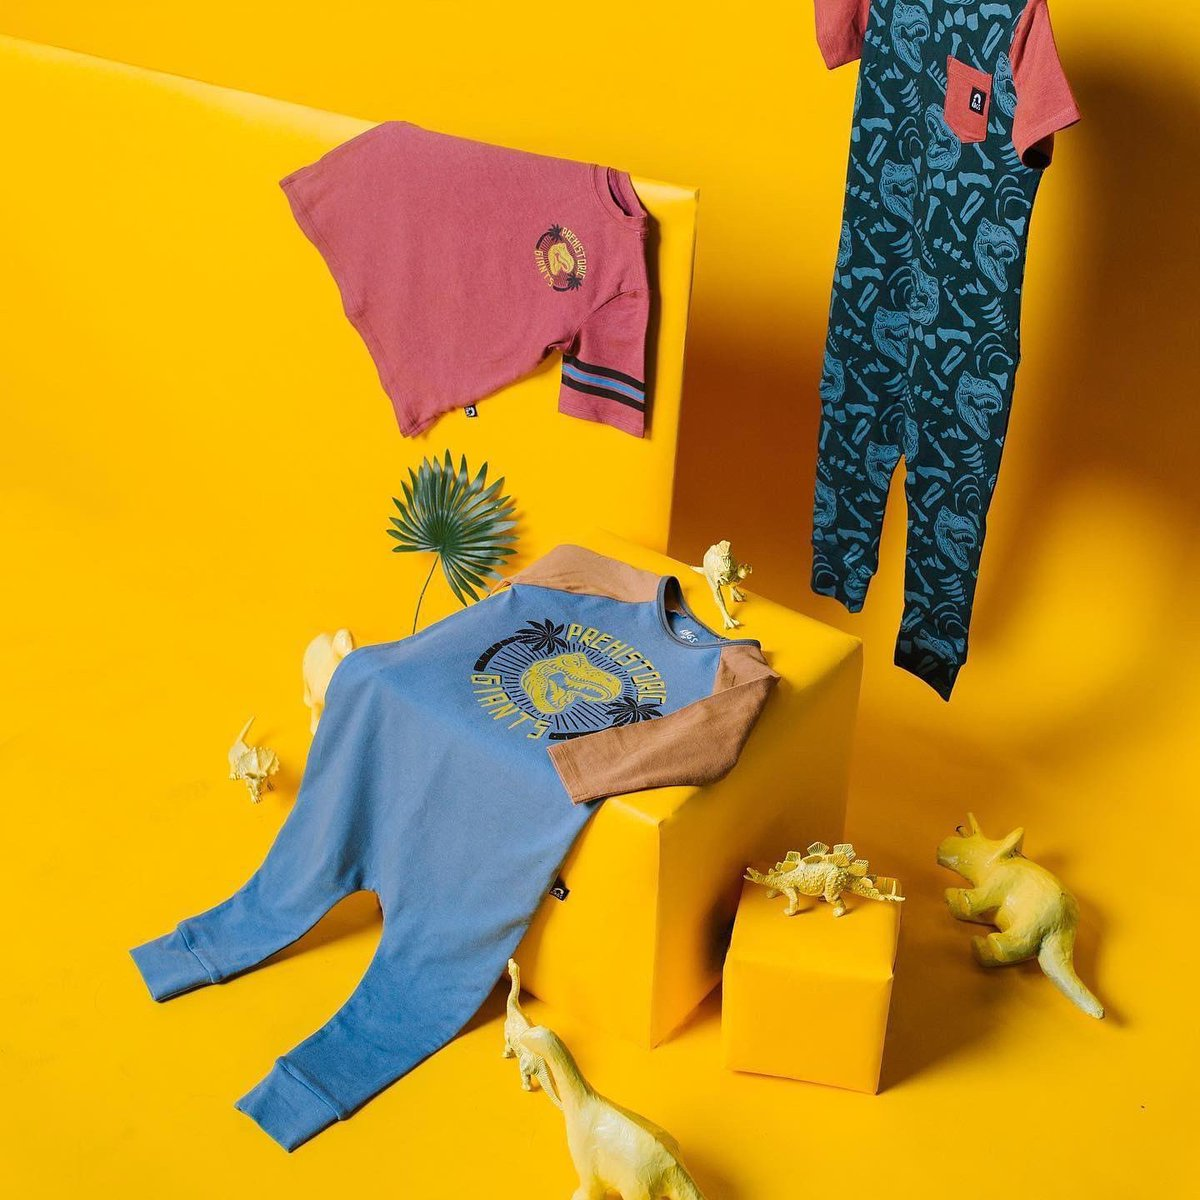 Rags is kicking off Birthday Week with this jurassic trio! 🦖https://t.co/vAmRhyvpcF #kids #clothes #adults #parents #dinosaurs #children #rags #birthday #birthdayweek #shoponline https://t.co/2hMadrzbyK